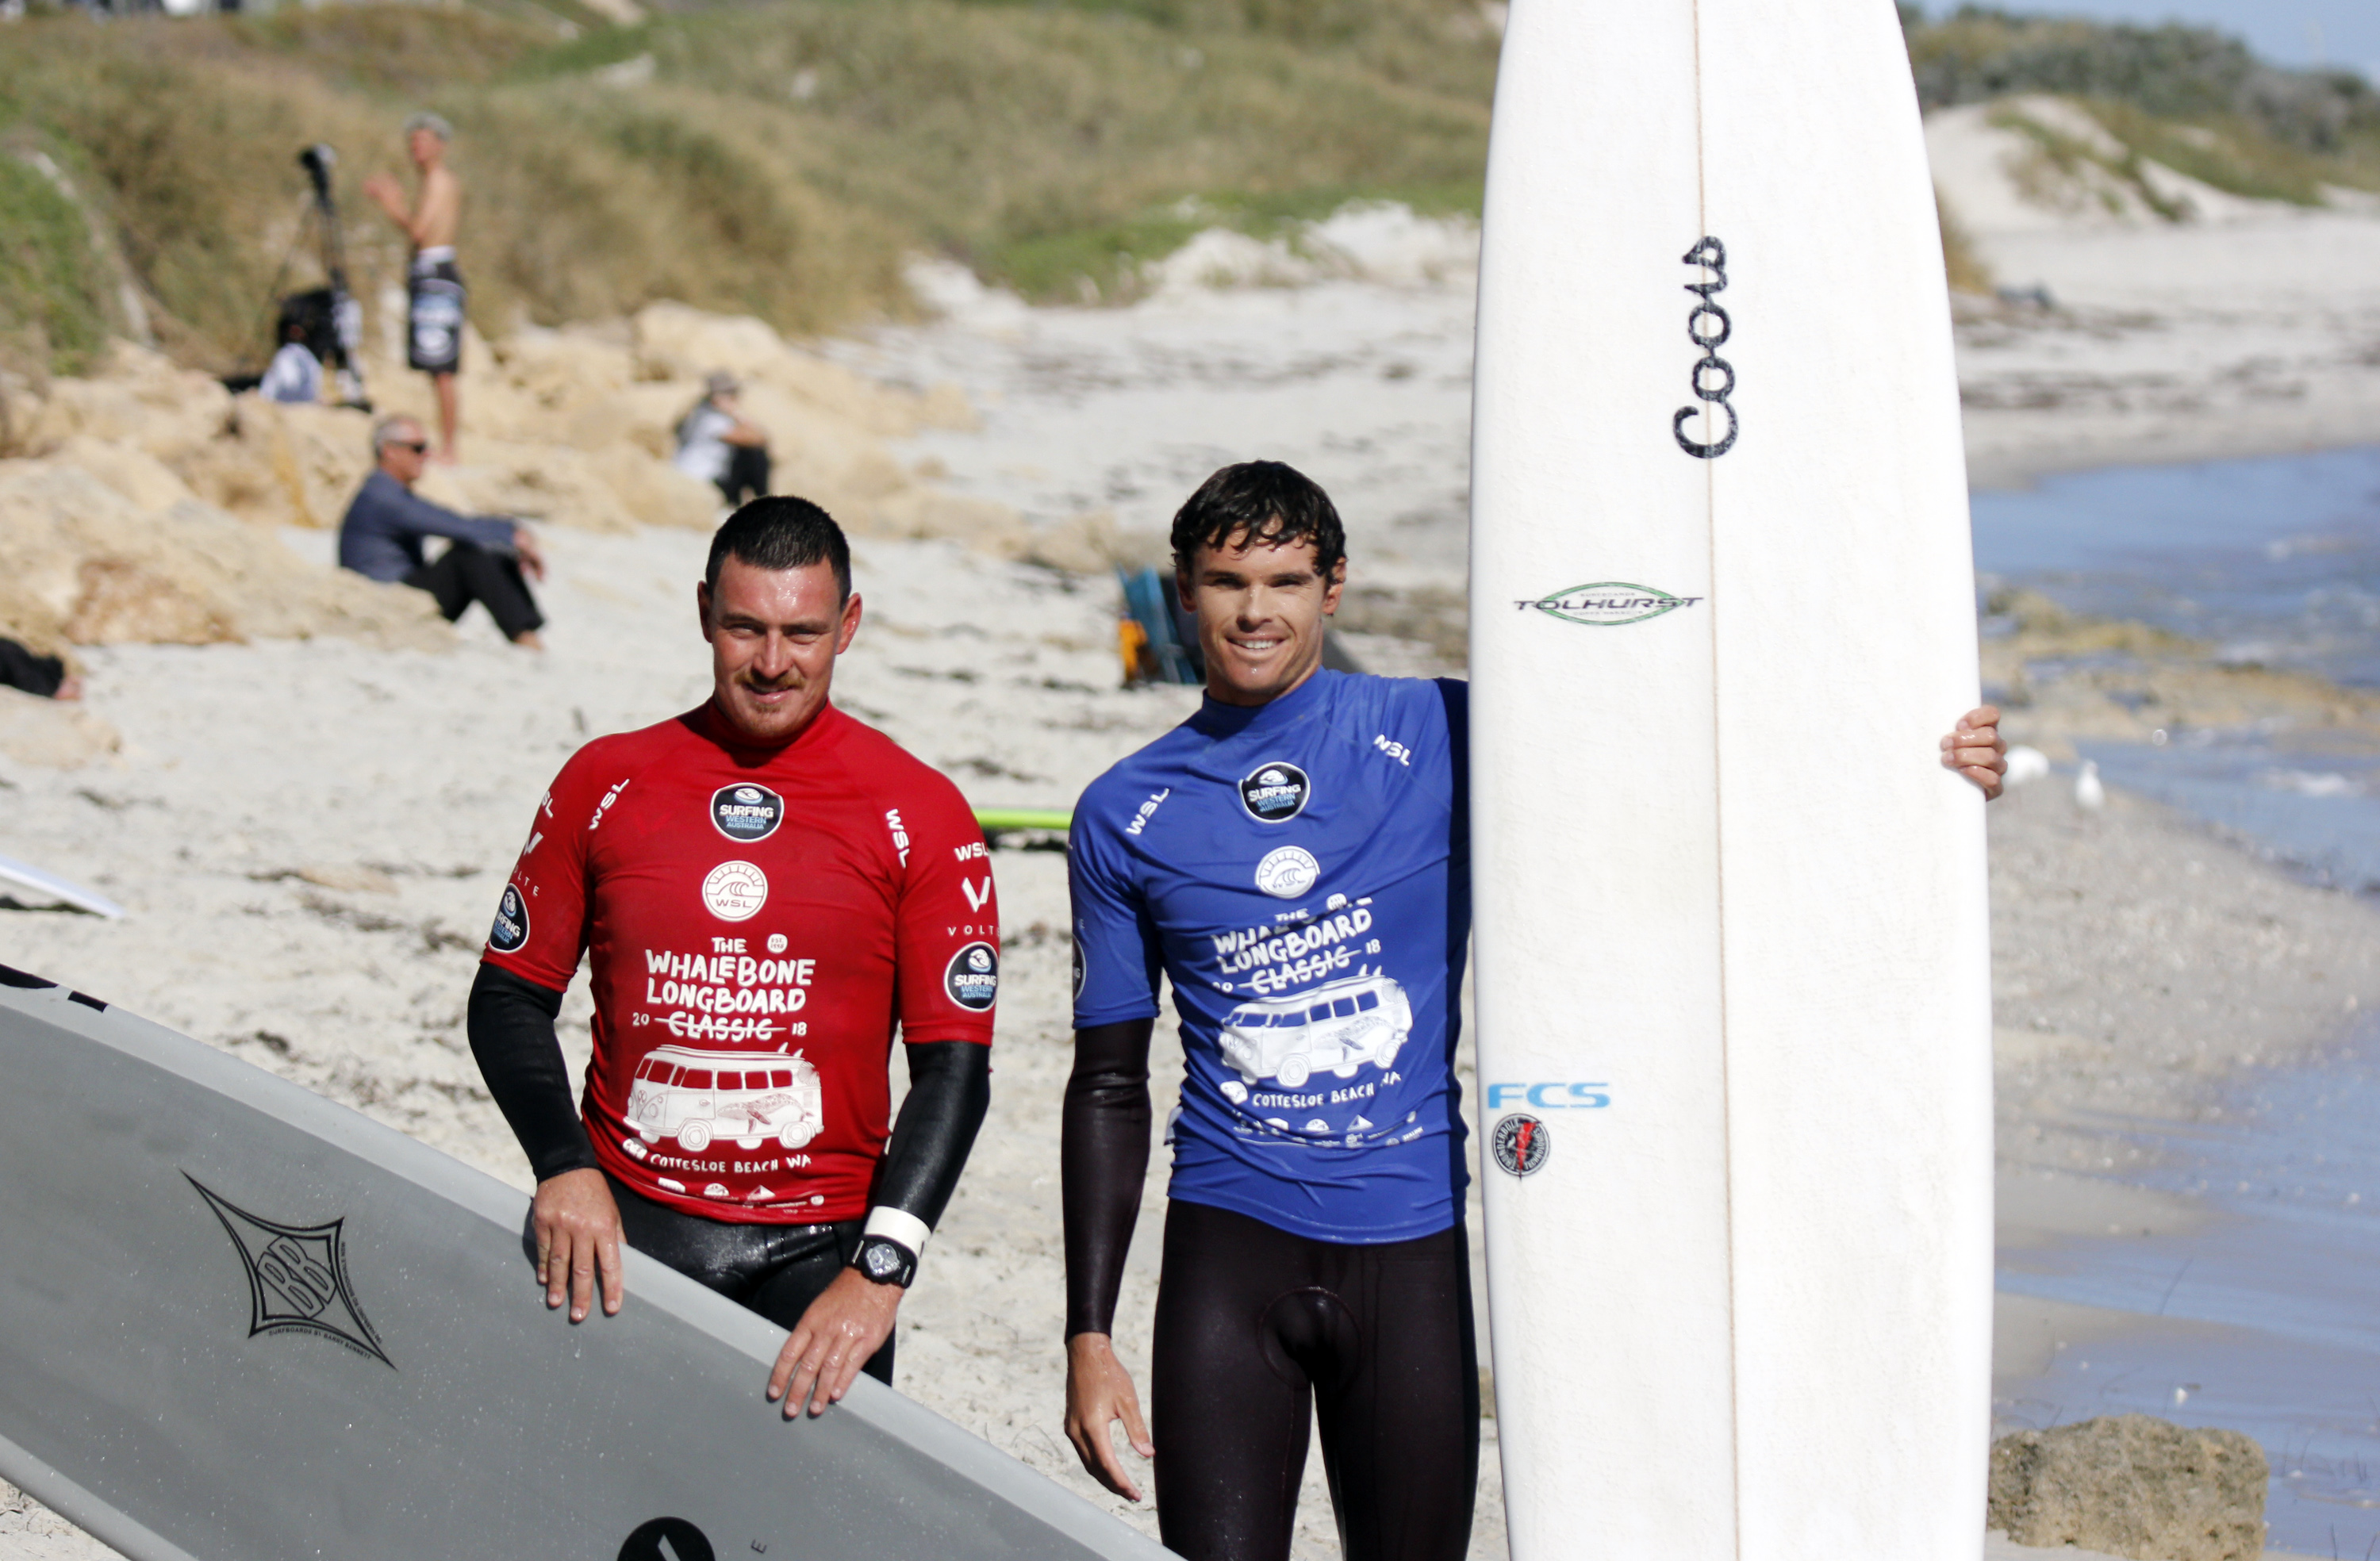 Wsl Lqs Men's Finalists Majeks